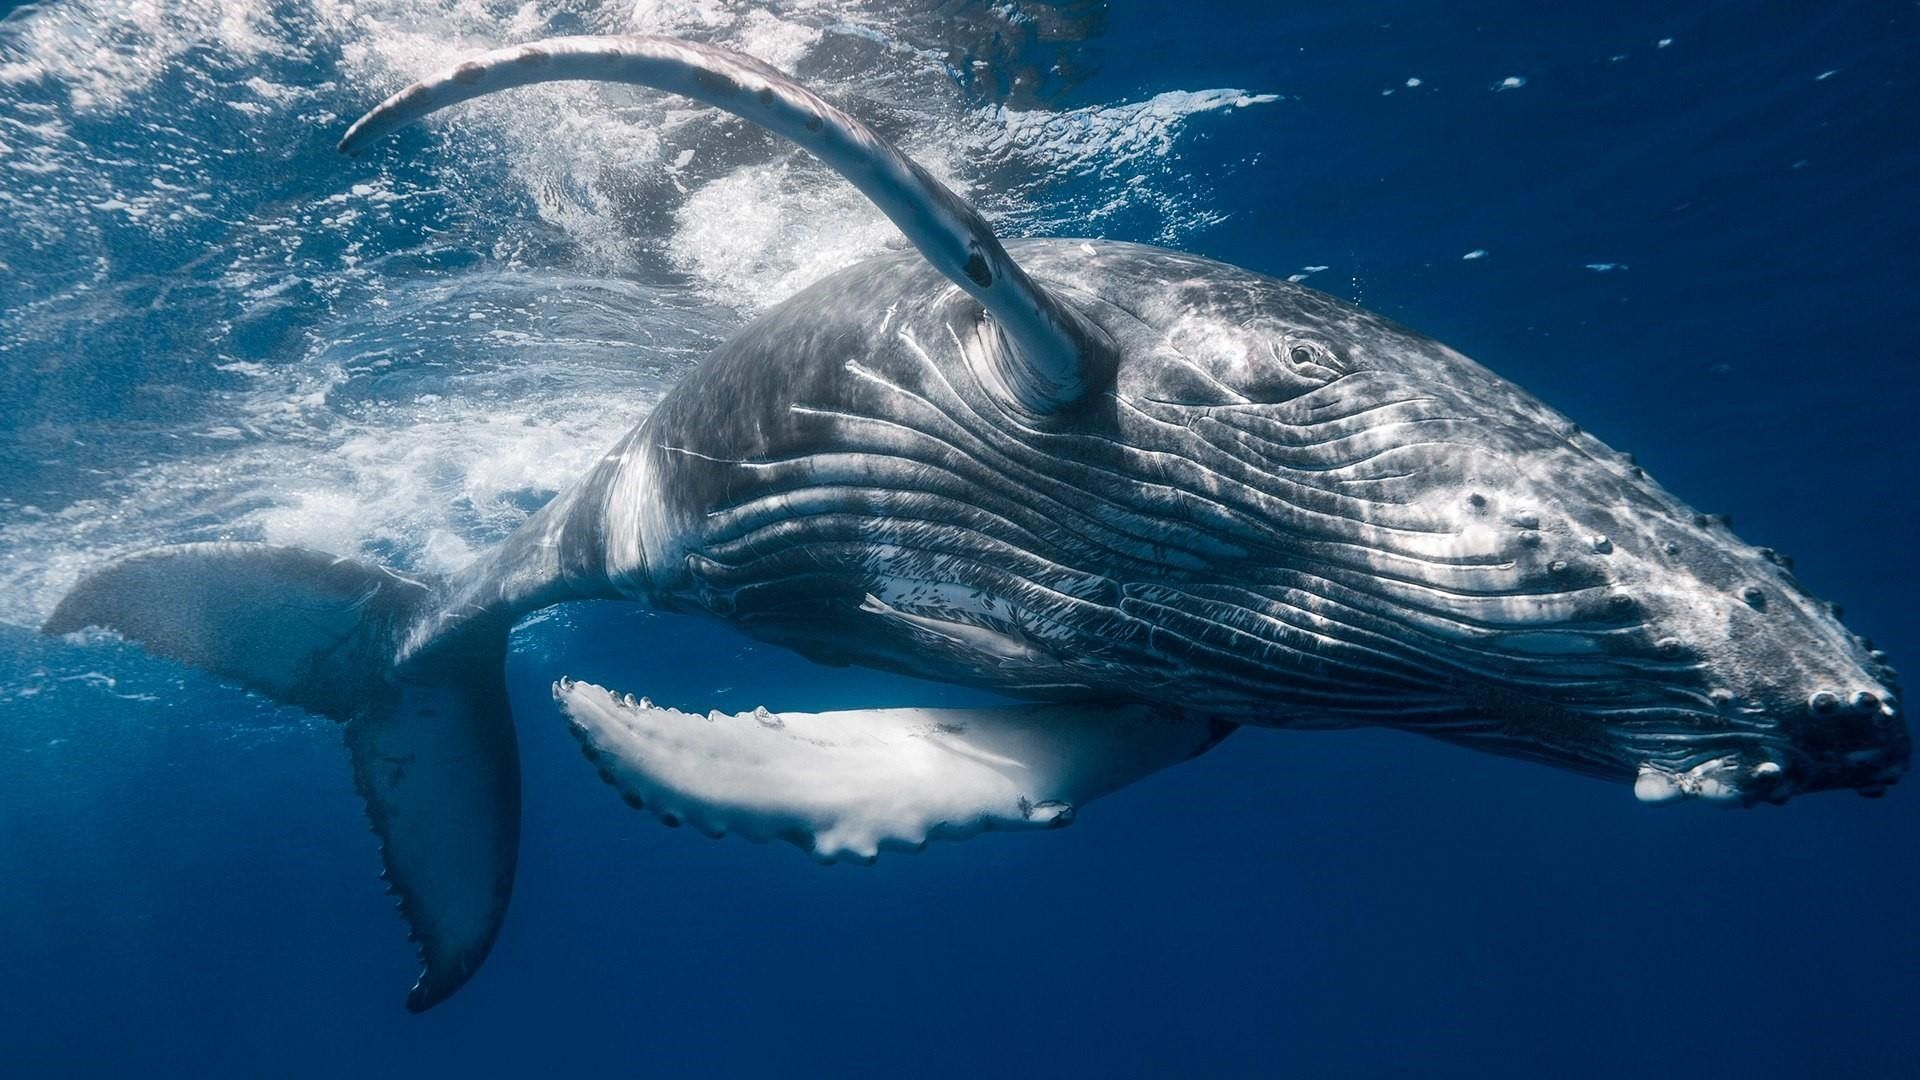 show me a picture of a whale